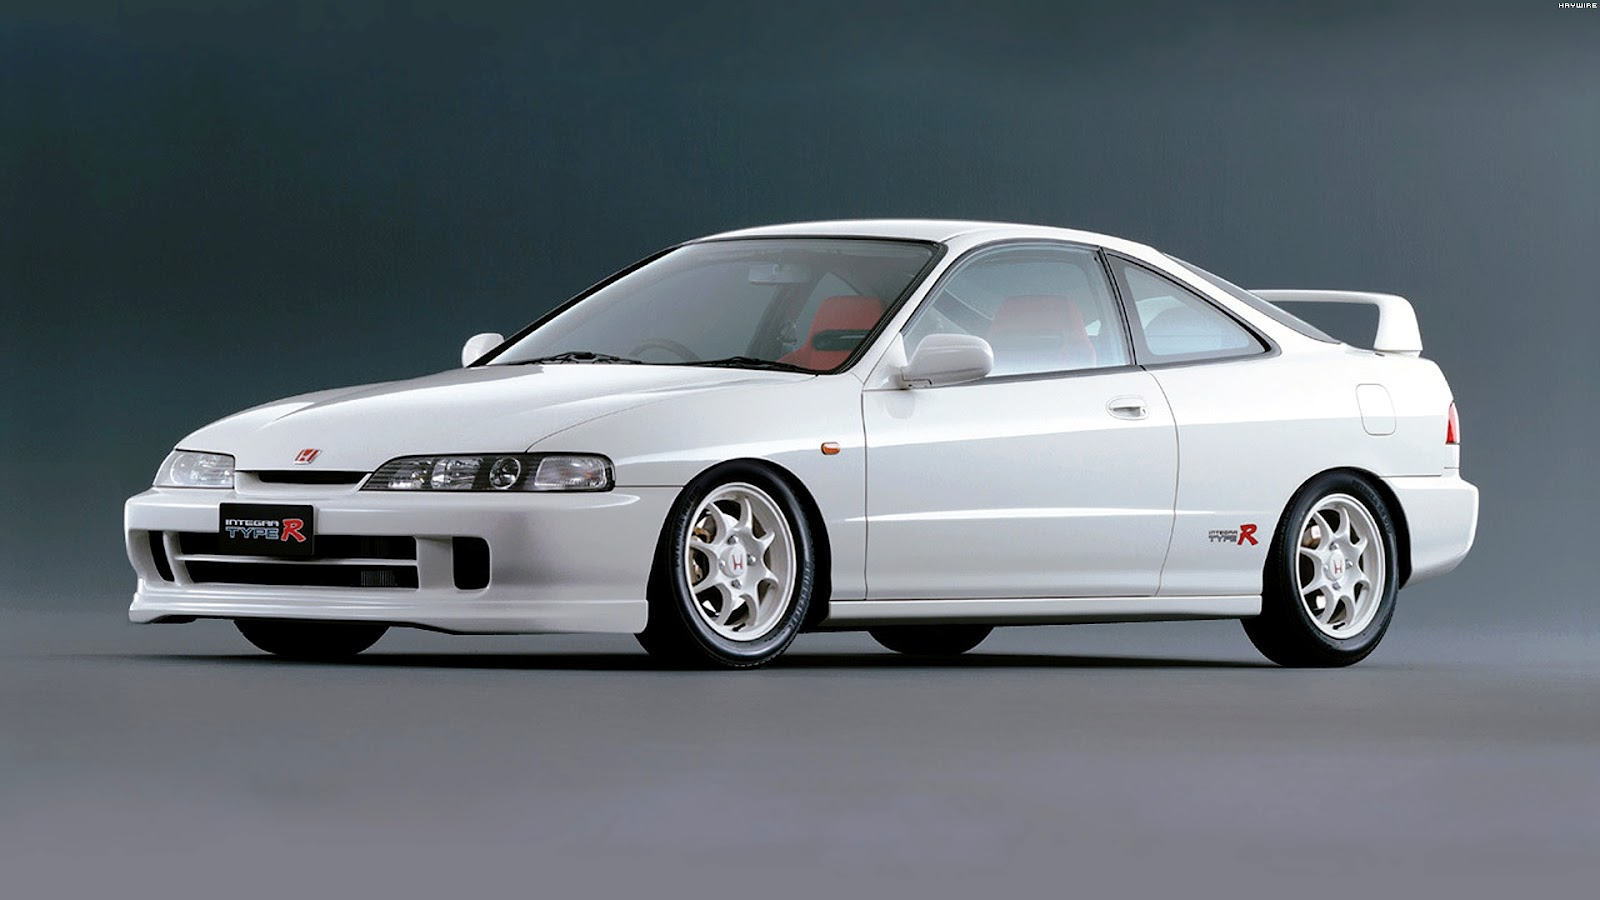 Exterior 68558034 additionally Coupe besides Audi A6 4 2 Quattro Avant Wallpapers furthermore Dc2 Integra Type R likewise Exterior 52527954. on 1997 acura cl 3 0